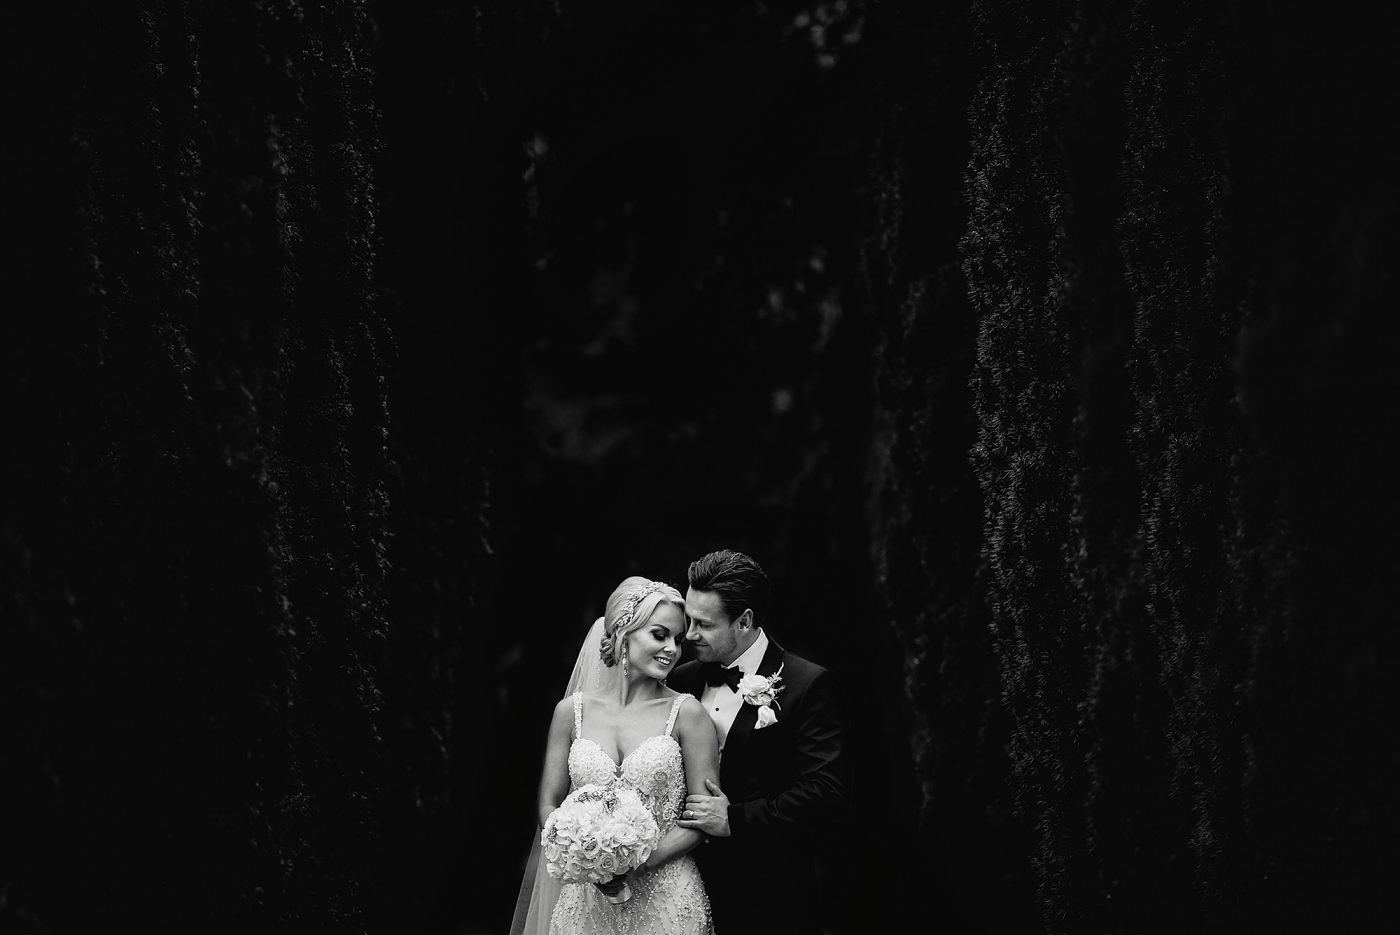 black and white couple portrait at quirky hertfordshire wedding venue